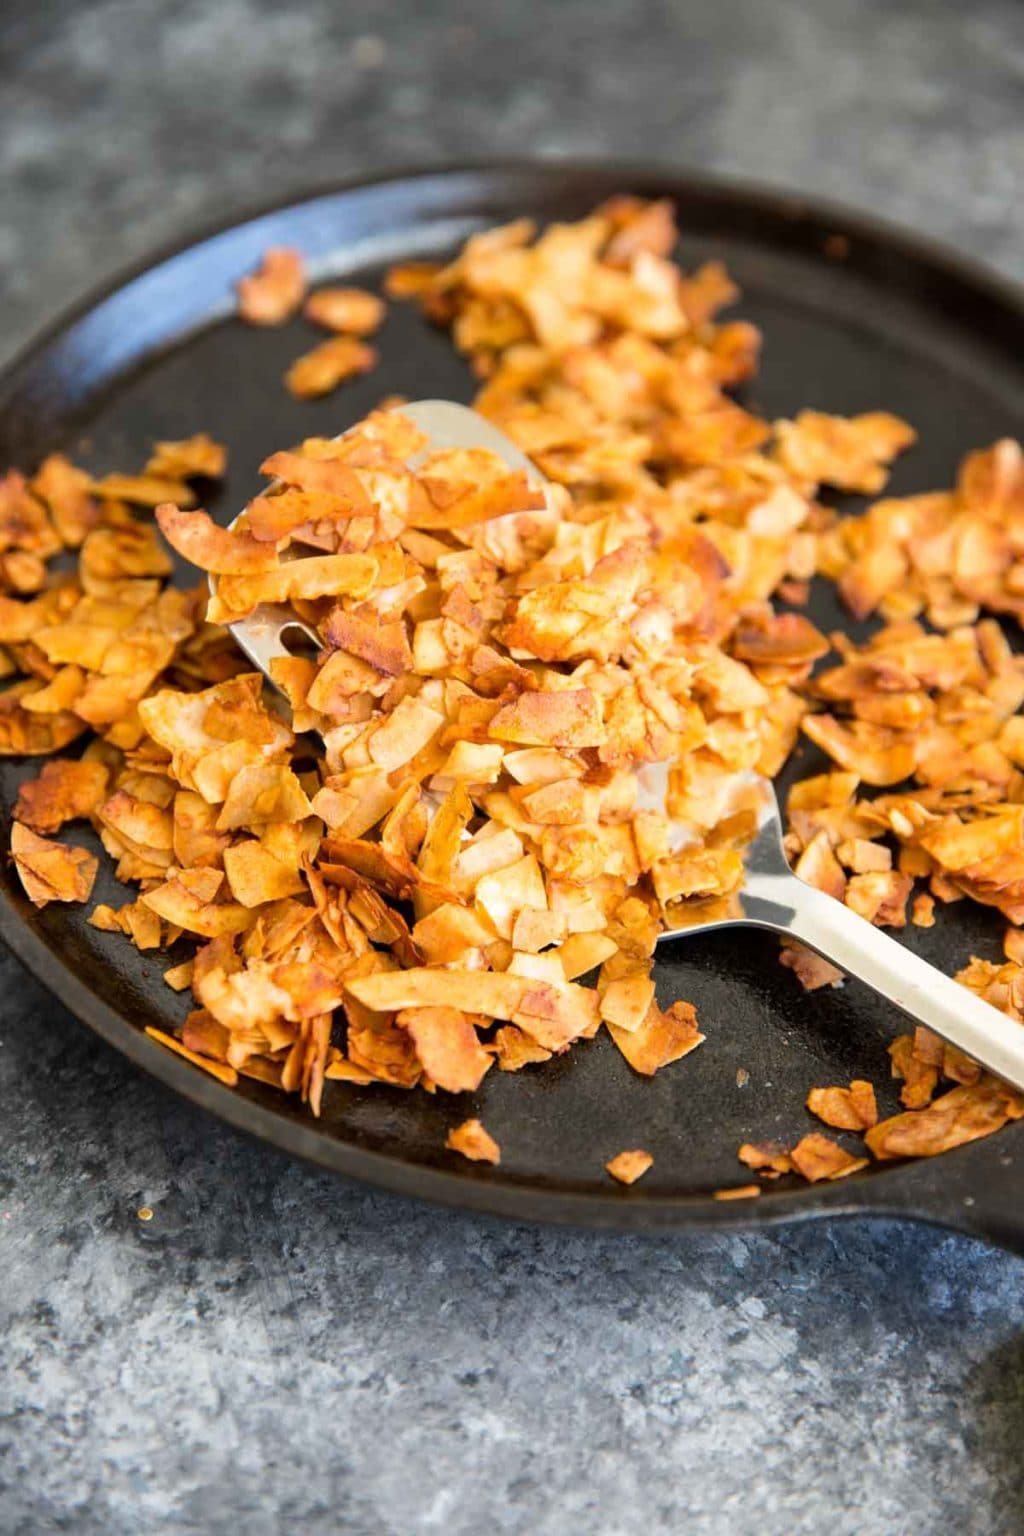 """Coconut Flake """"Bacon"""" - Coconut chips/flakes baked with soy sauce or tamari, maple syrup, liquid smoke and a touch of sriracha. Vegan bacon!"""